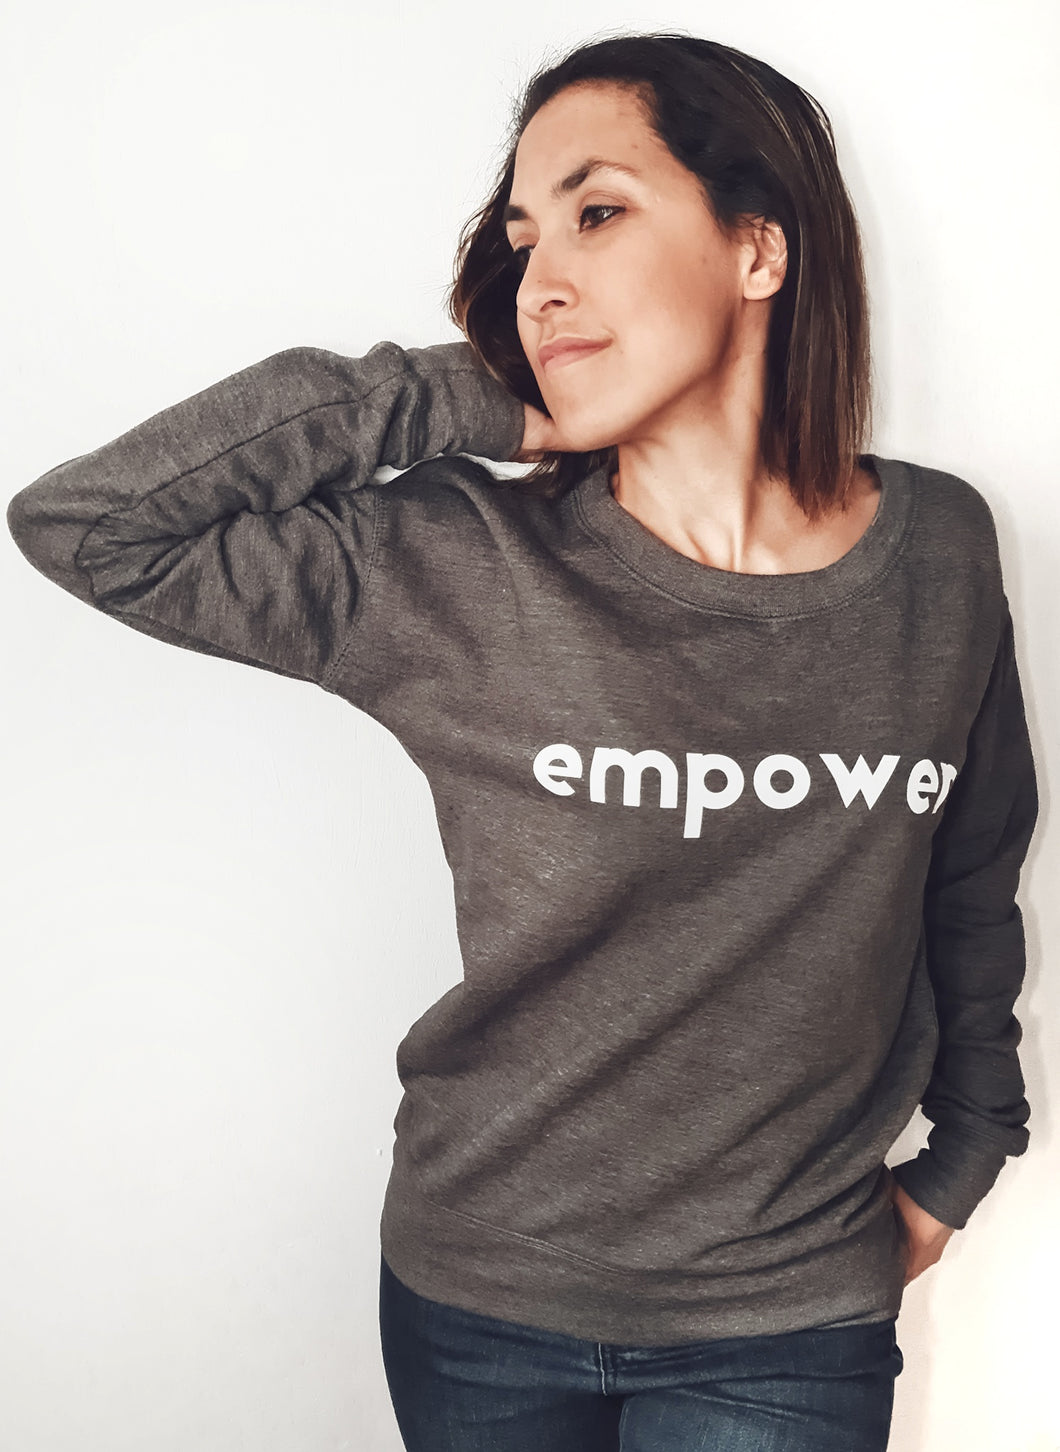 Super Mumma Grey Jumper with White Empower to help mums feel positive and empowered